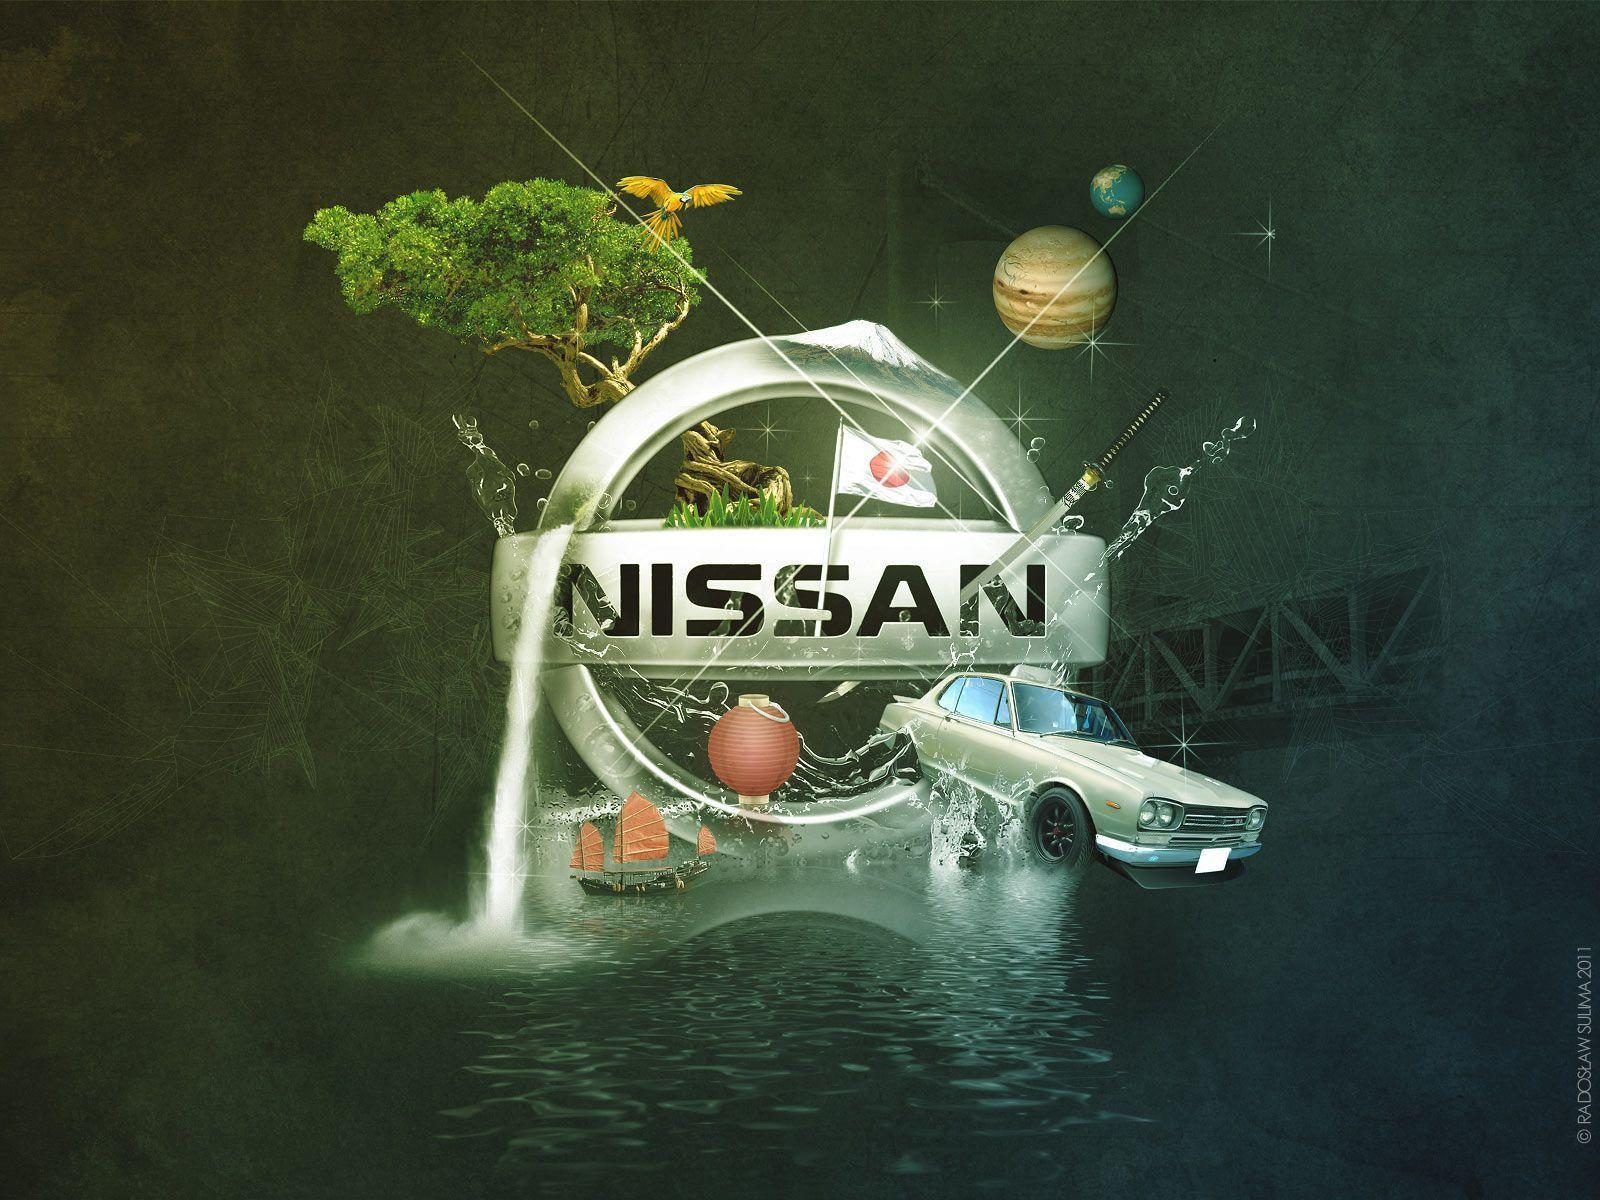 Free Wallpapers - Nissan Logo wallpaper